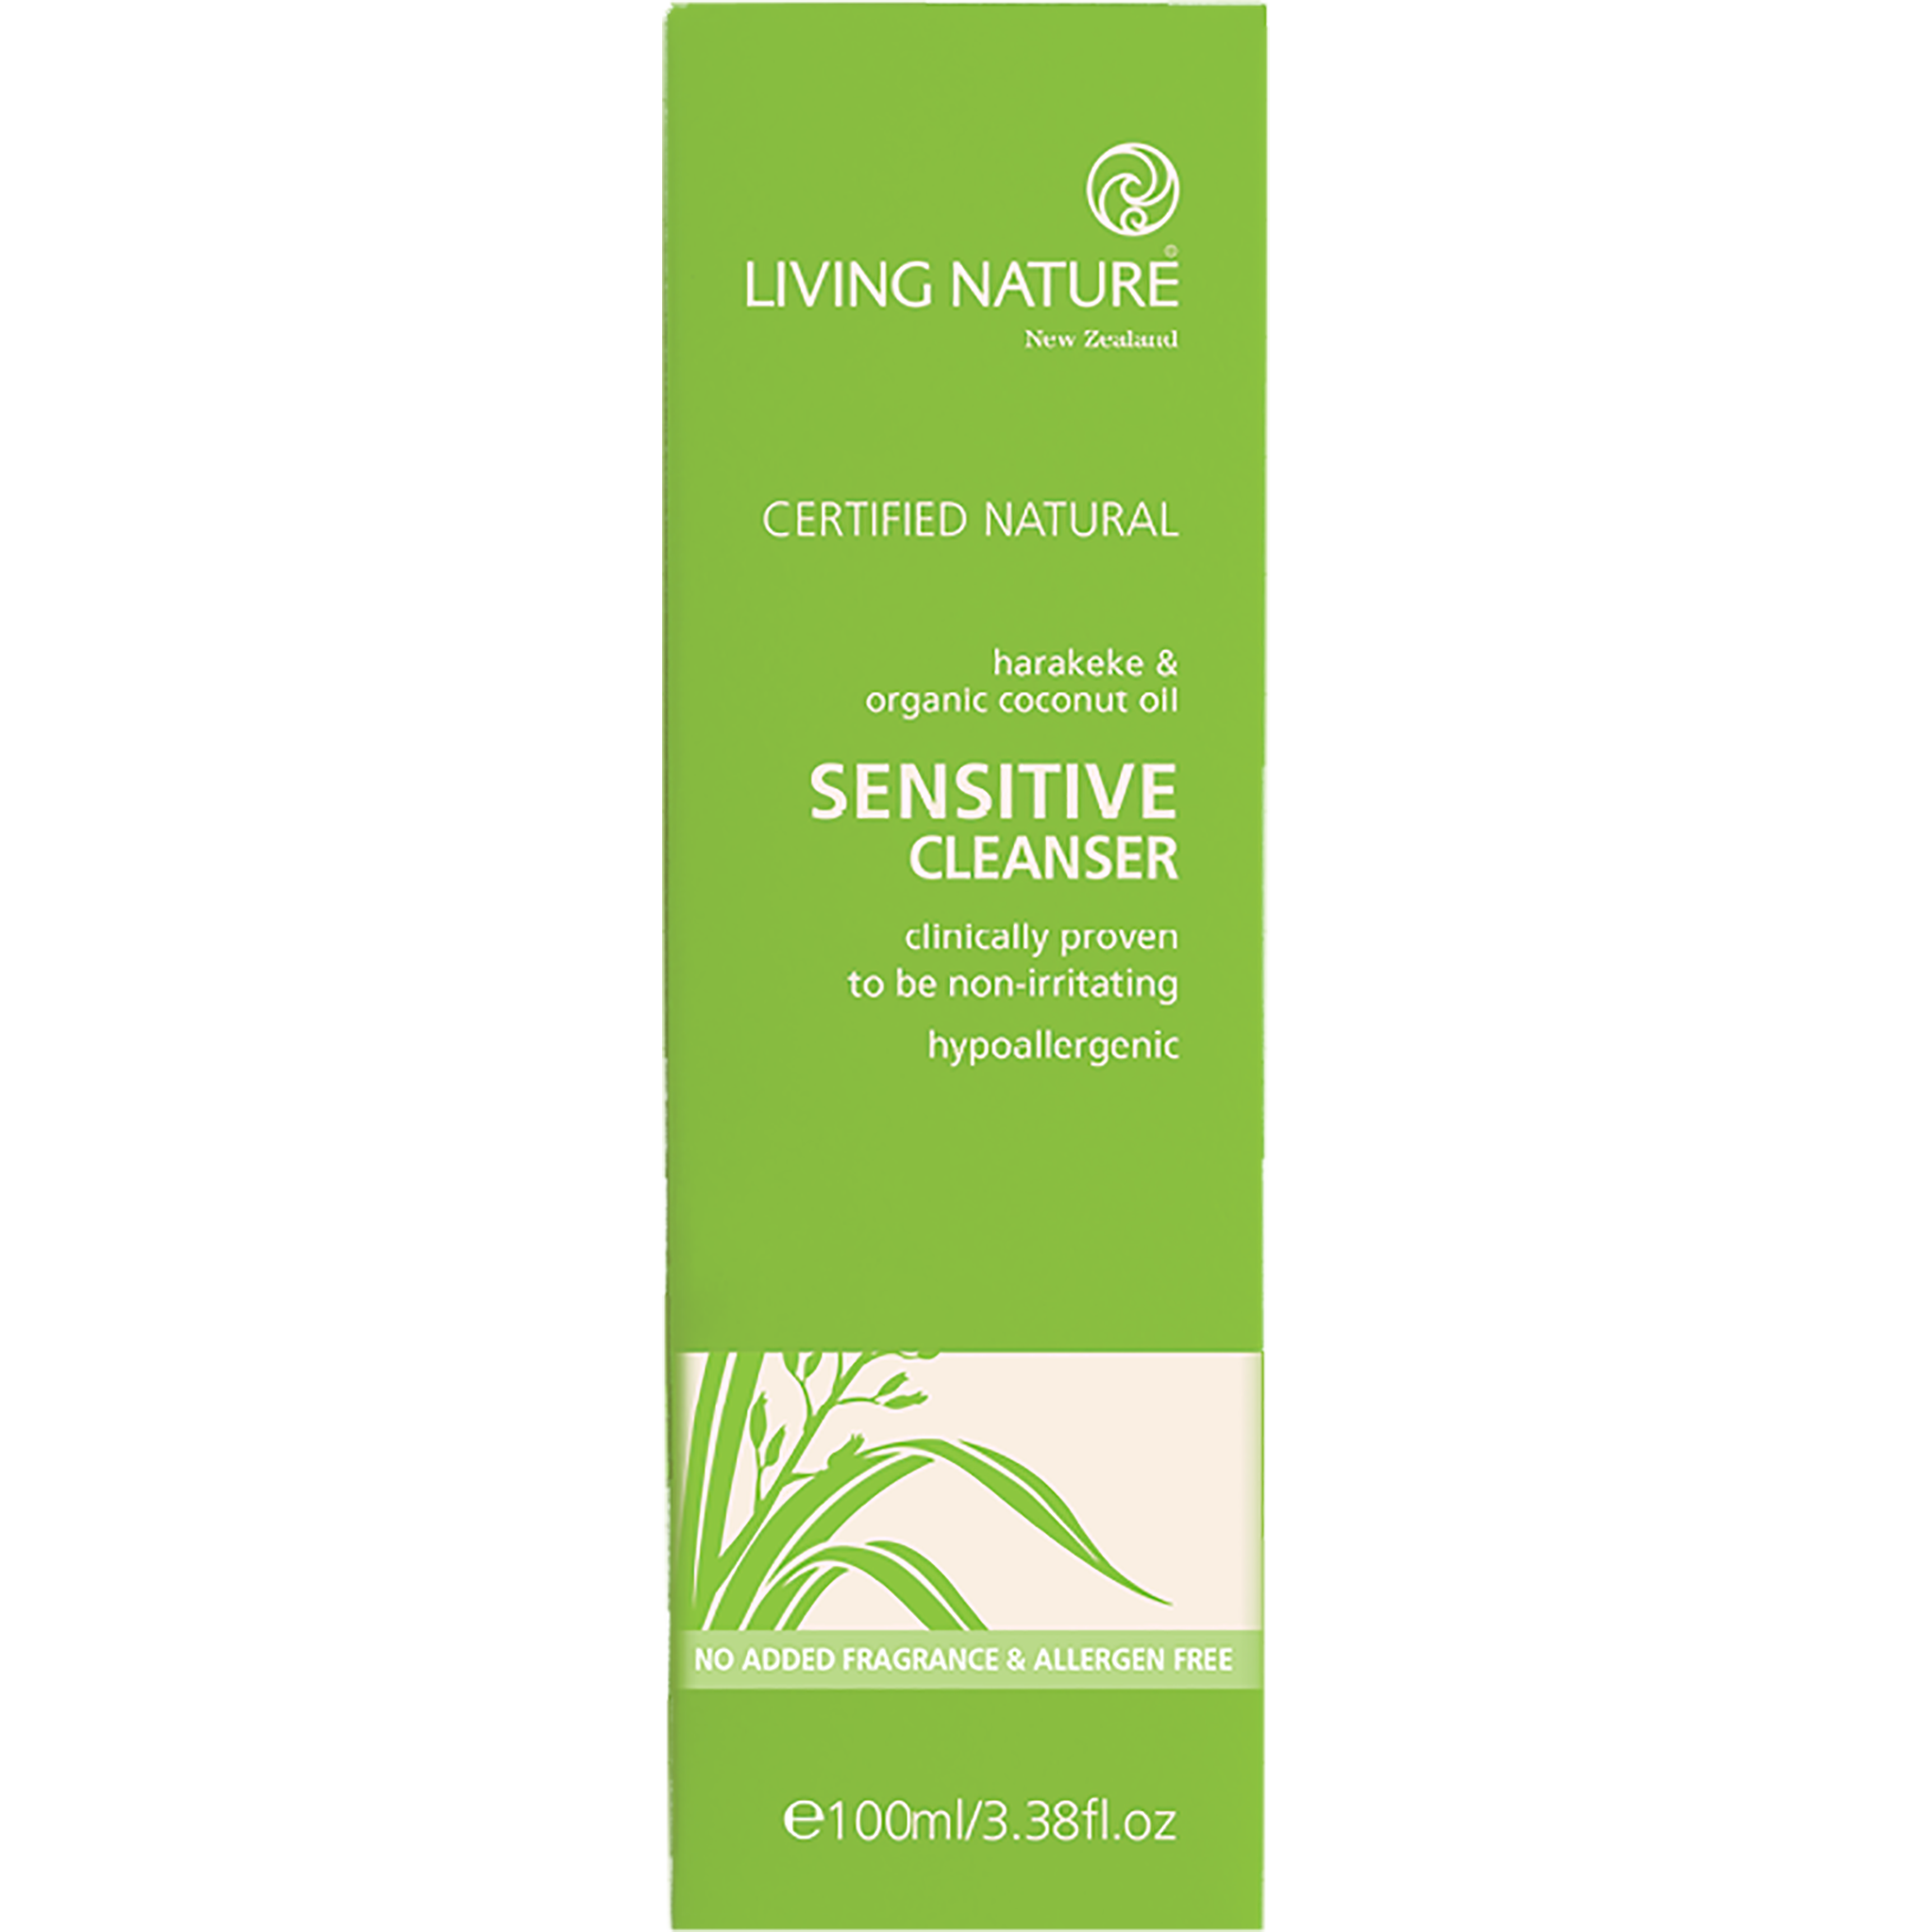 Sensitive Cleanser